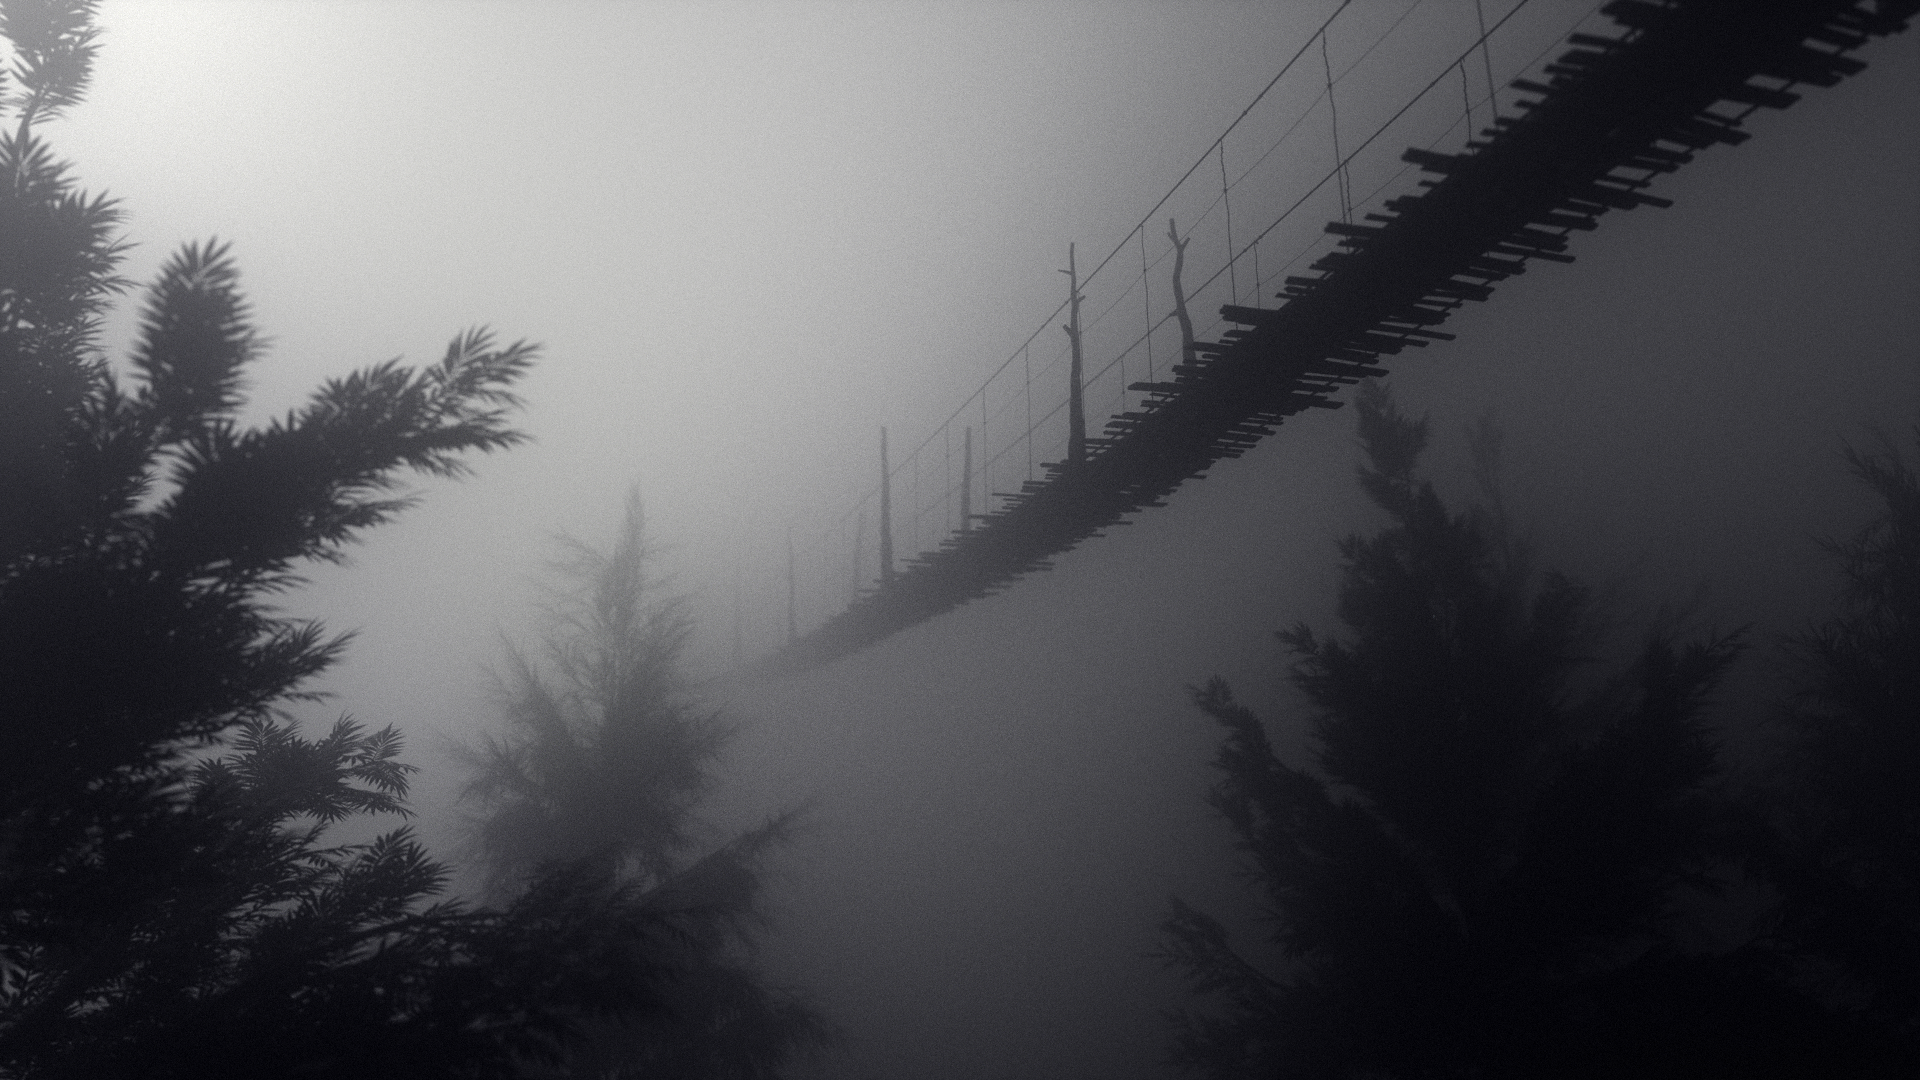 Volume Rendering with Octane Render for Cinema 4D - Foggy Bridge #2